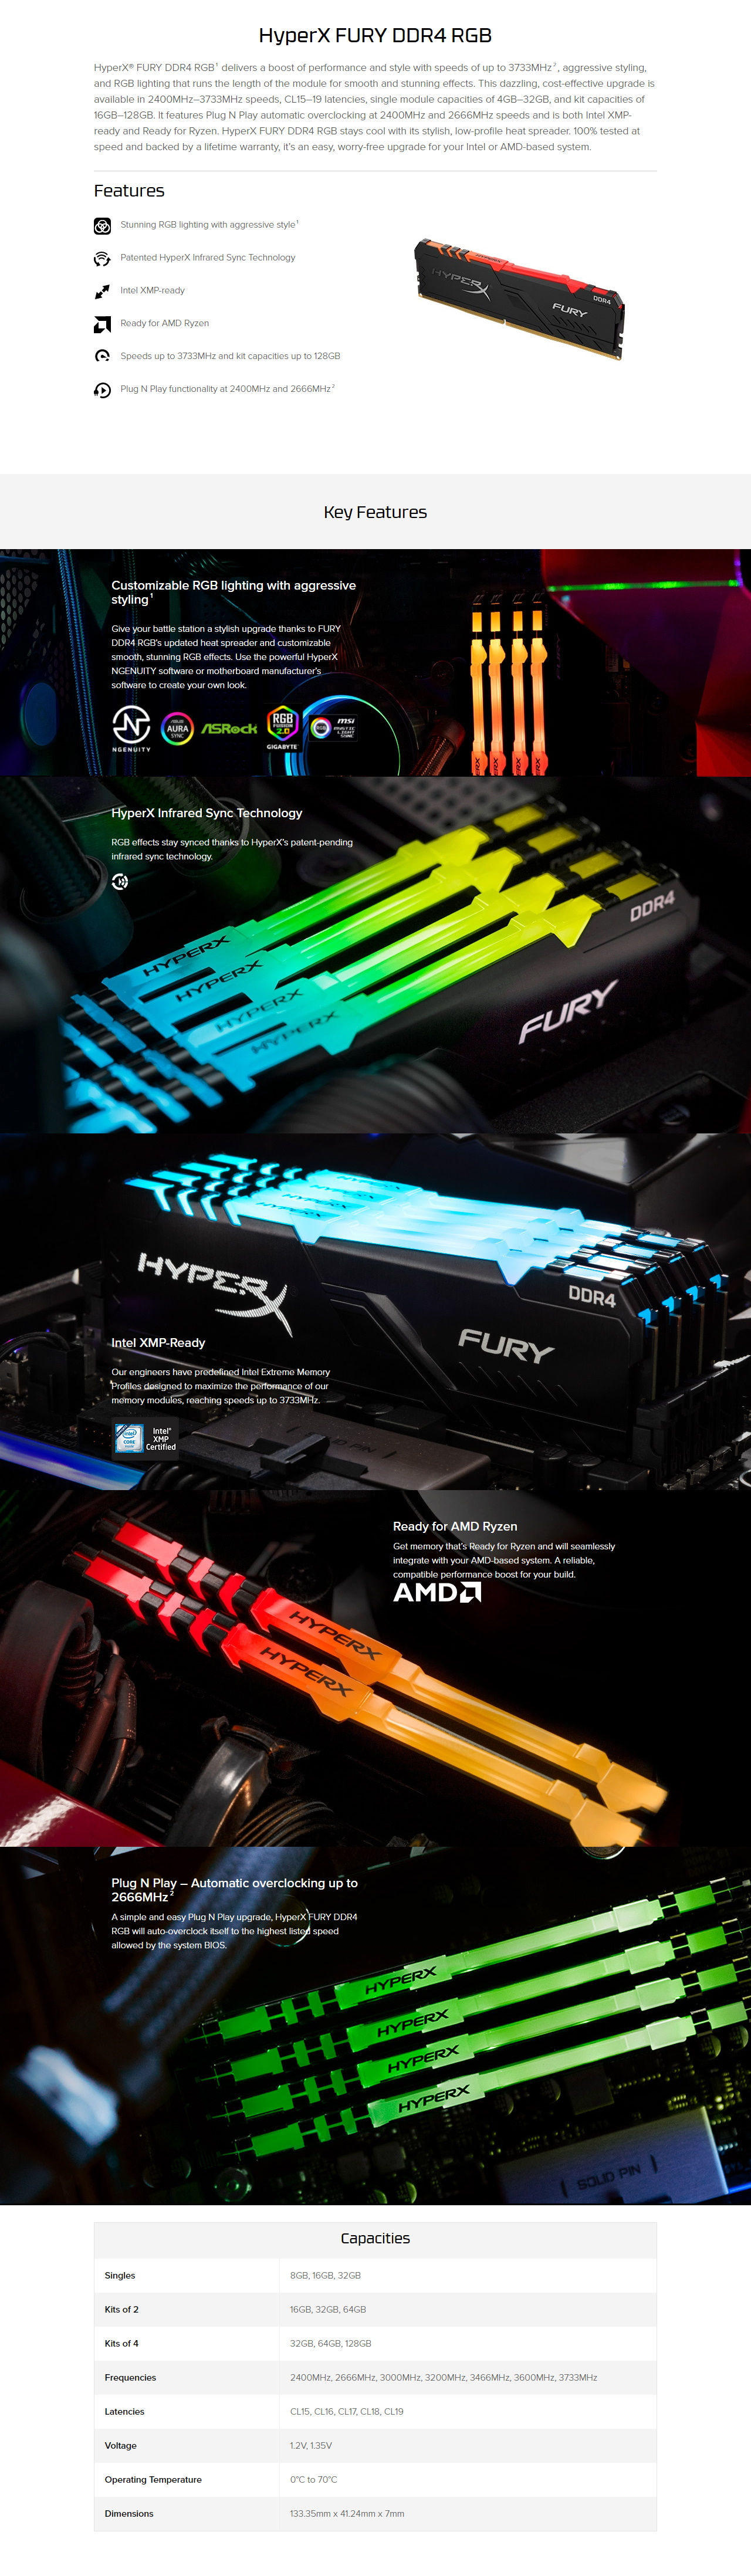 A large marketing image providing additional information about the product Kingston 16GB Kit (2x8GB) DDR4 HyperX Fury RGB C16 3200MHz - Additional alt info not provided